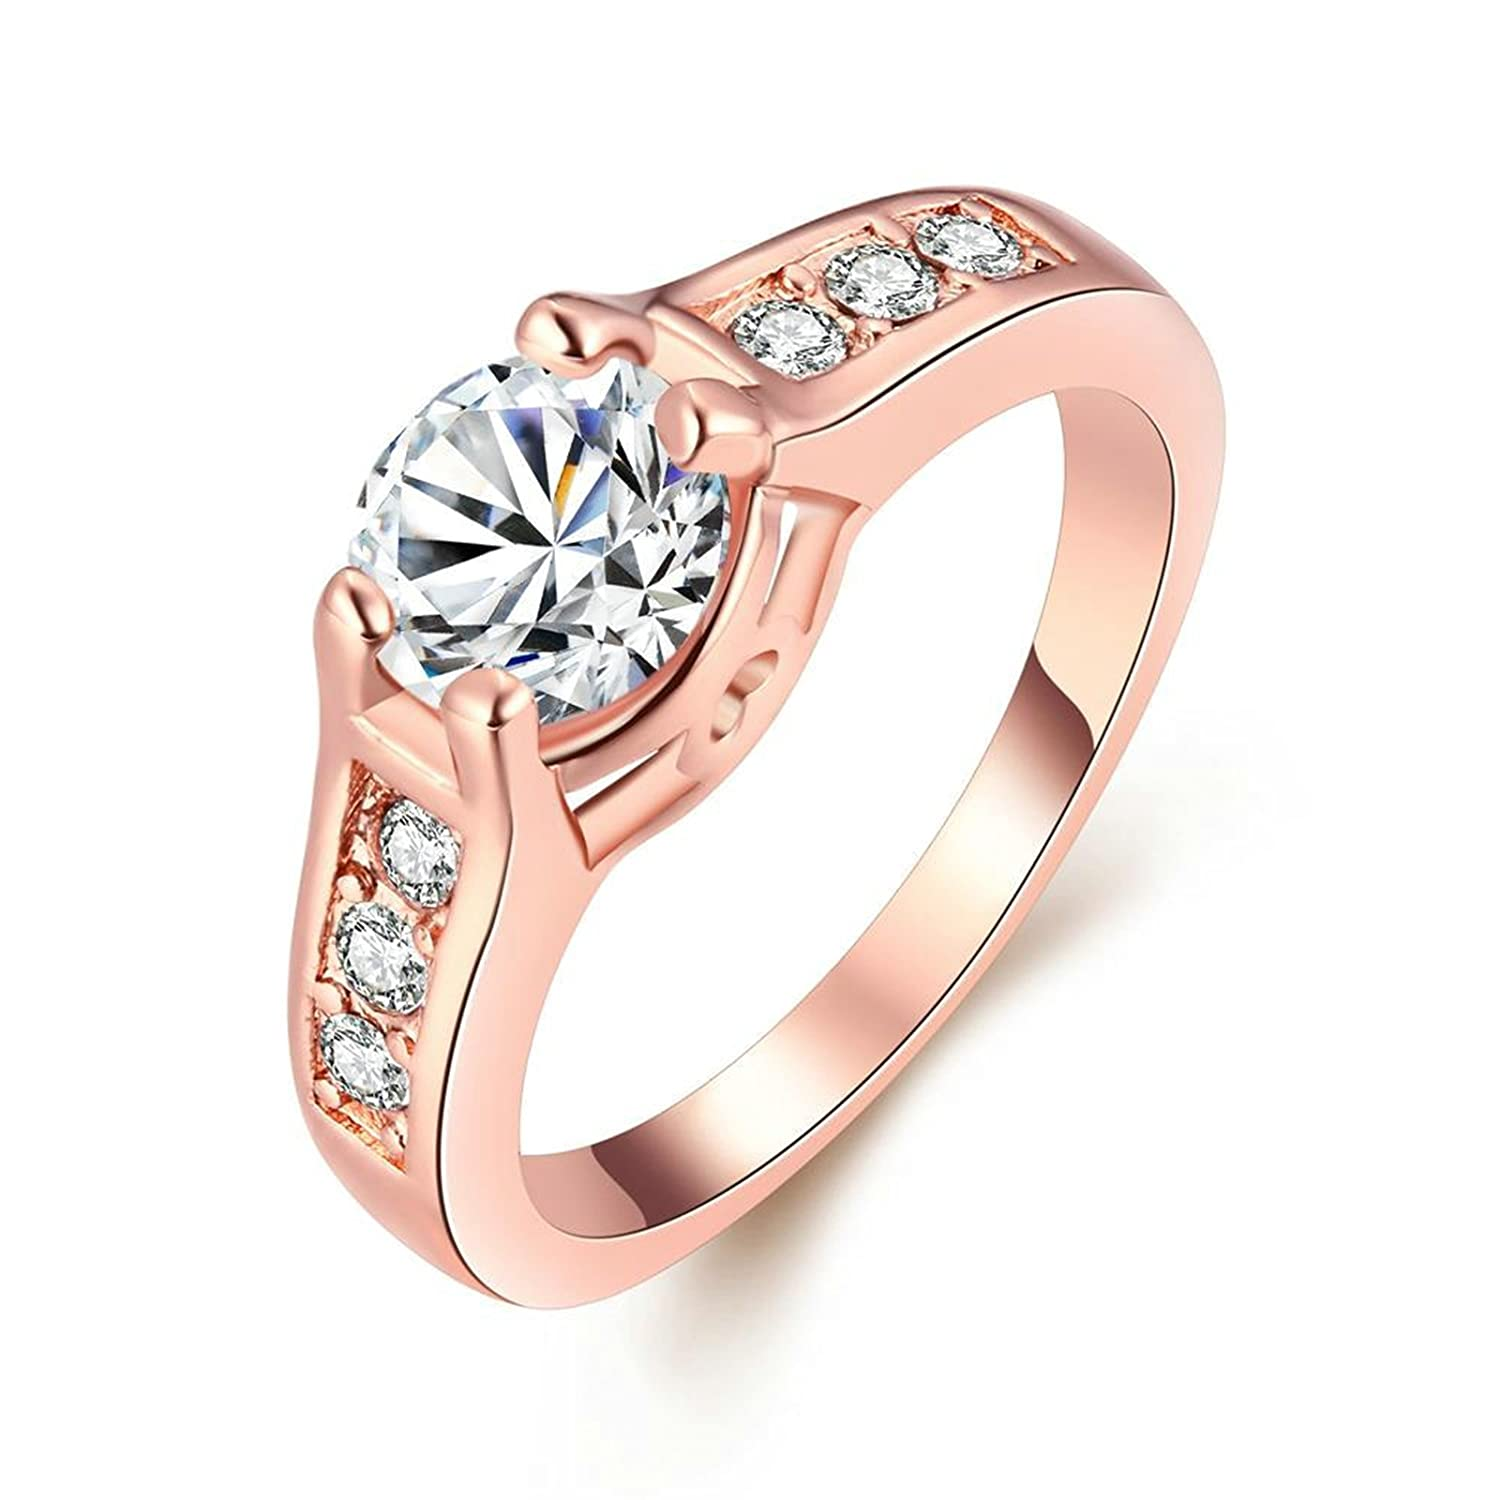 Gnzoe Fashion Jewelry Rose Gold Plated Women Rings Simple Round AAA CZ Zircon Wedding Bands